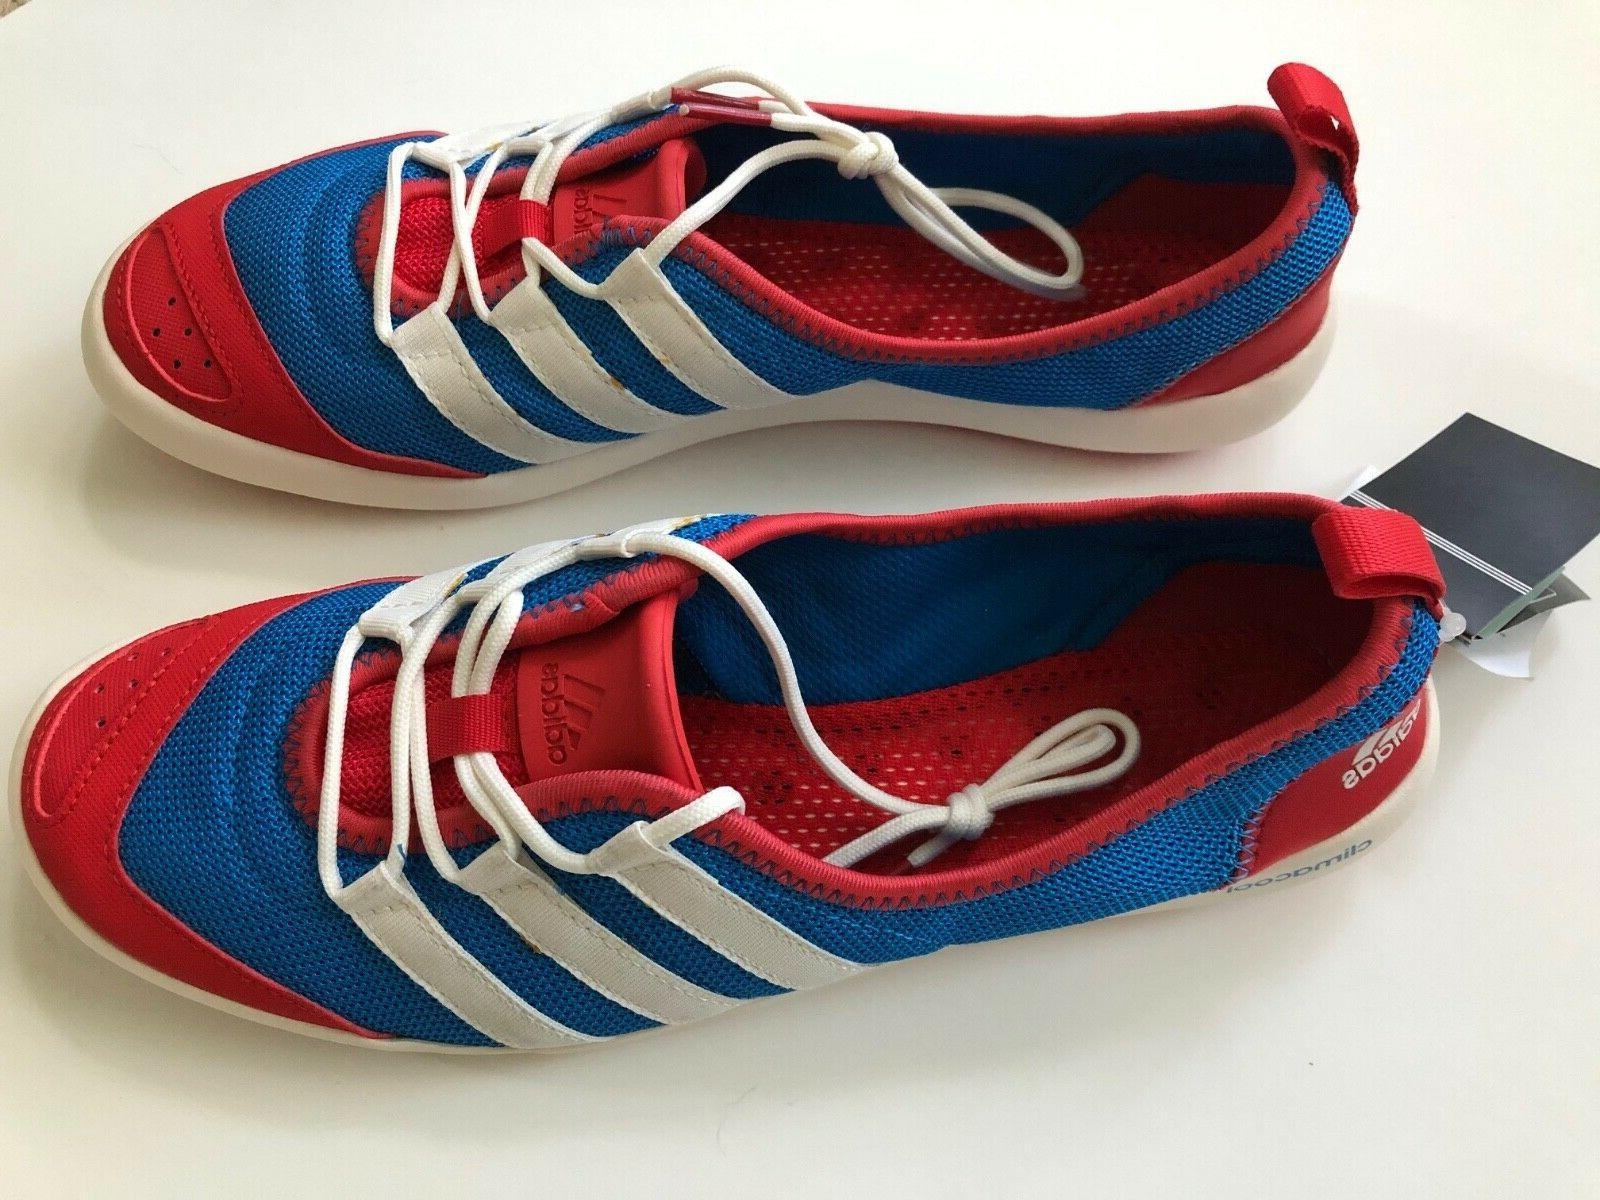 Adidas Climacool Water Shoes Red & Blue Women's 10